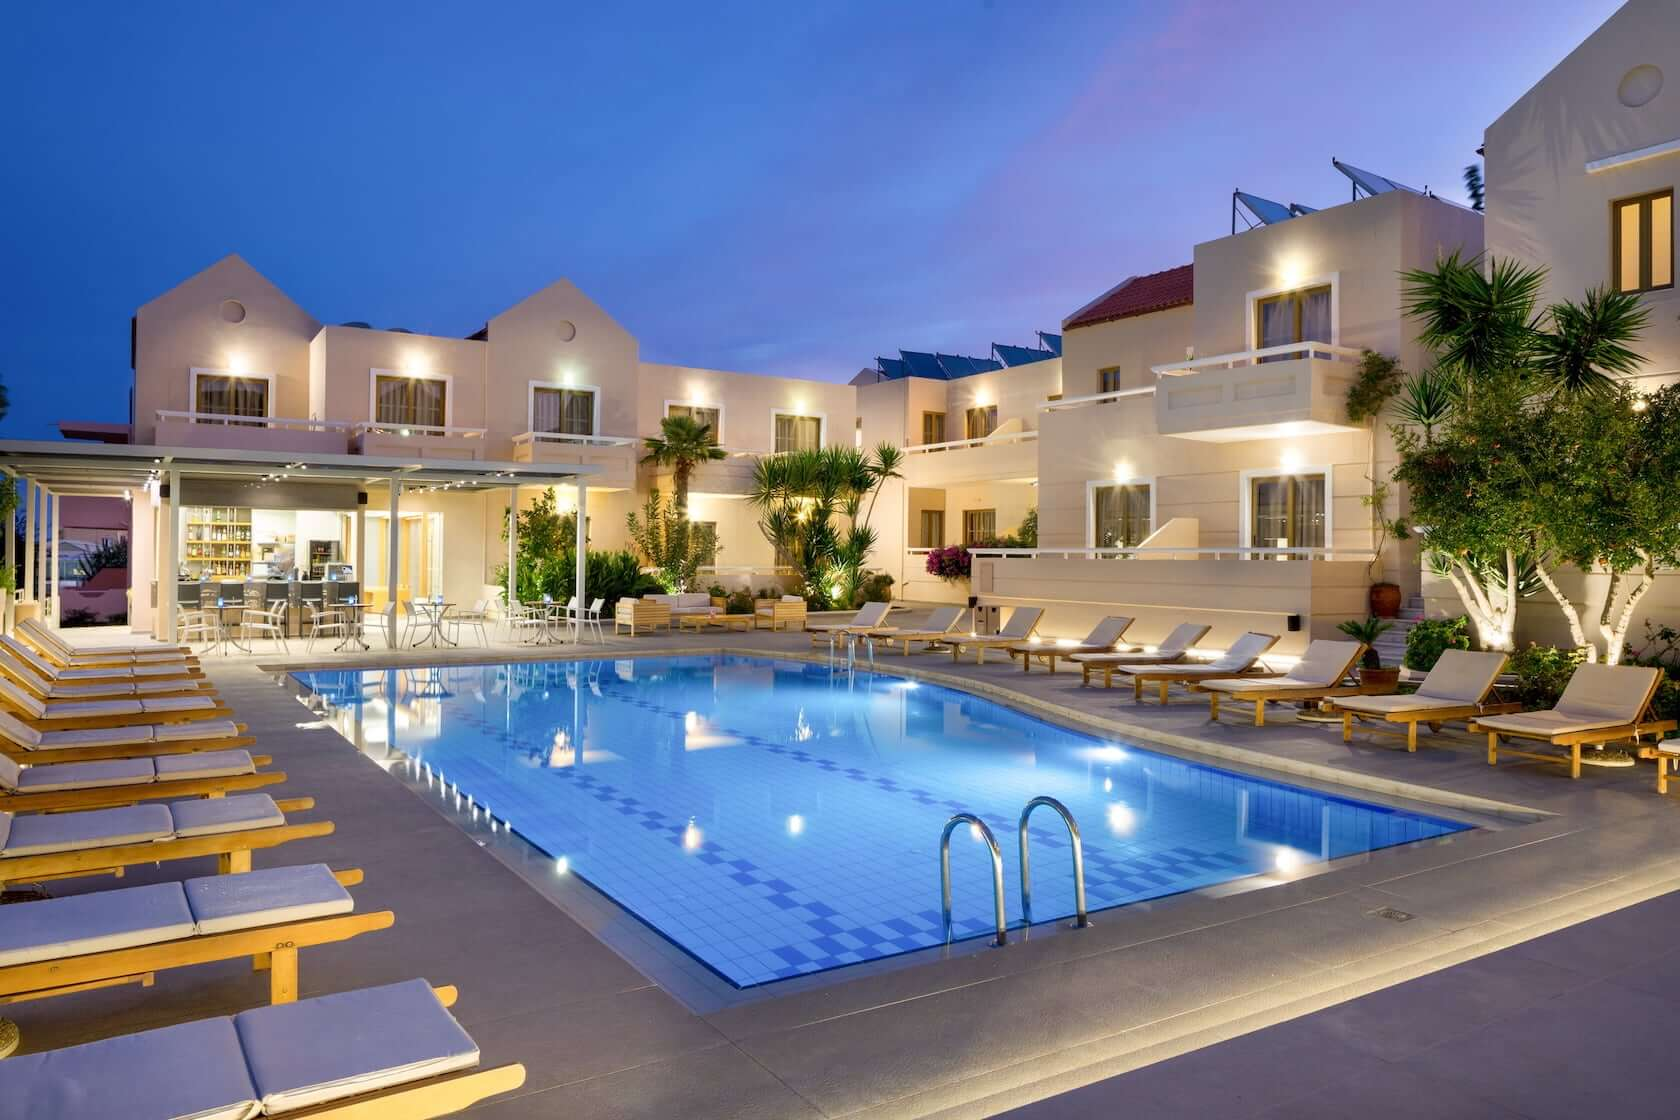 Sun beds by the swimming pool at dusk in Oscar Suites & Village in Agia Marina Chania.